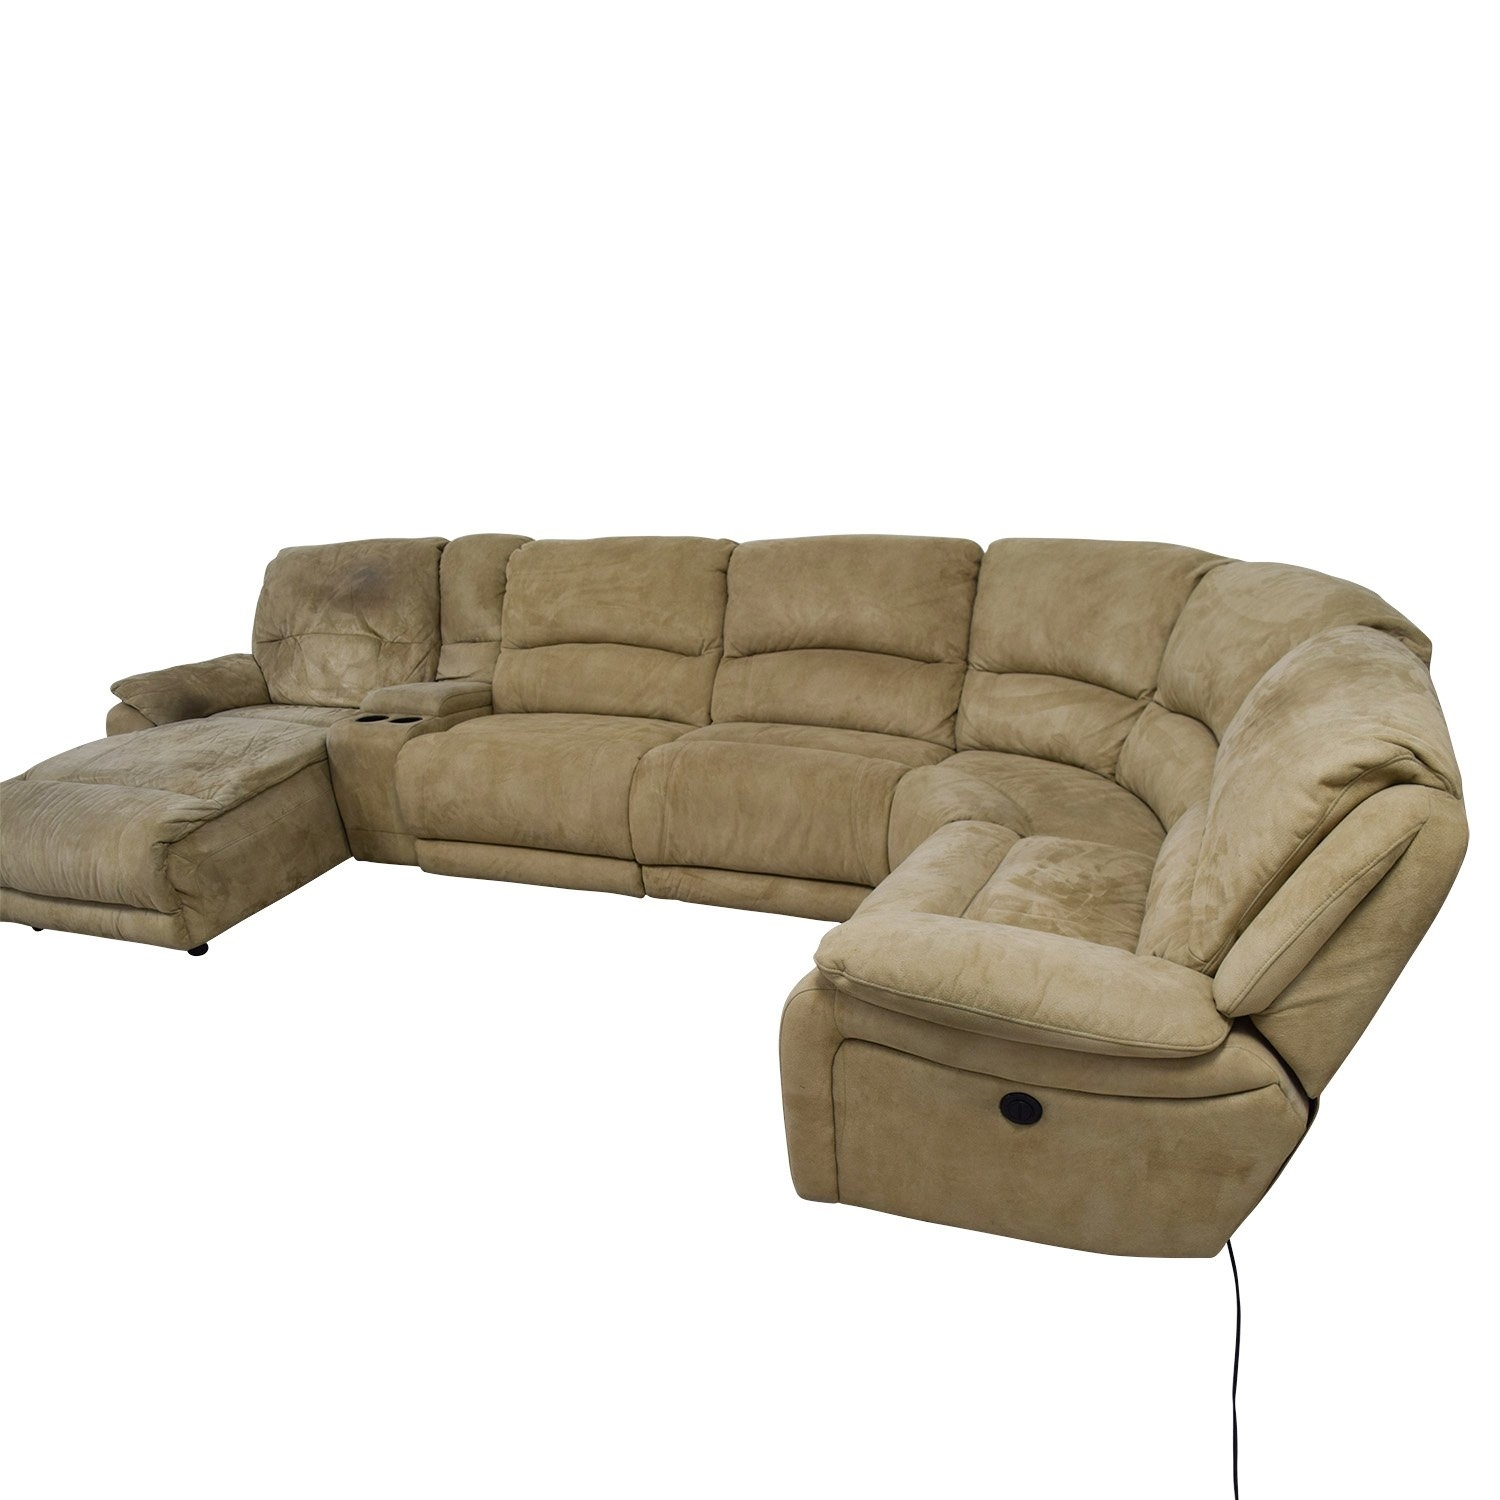 Fabulous 25 Power Reclining Sectional Sofa Favorite In Calder Grey 6 Piece Manual Reclining Sectionals (View 10 of 25)